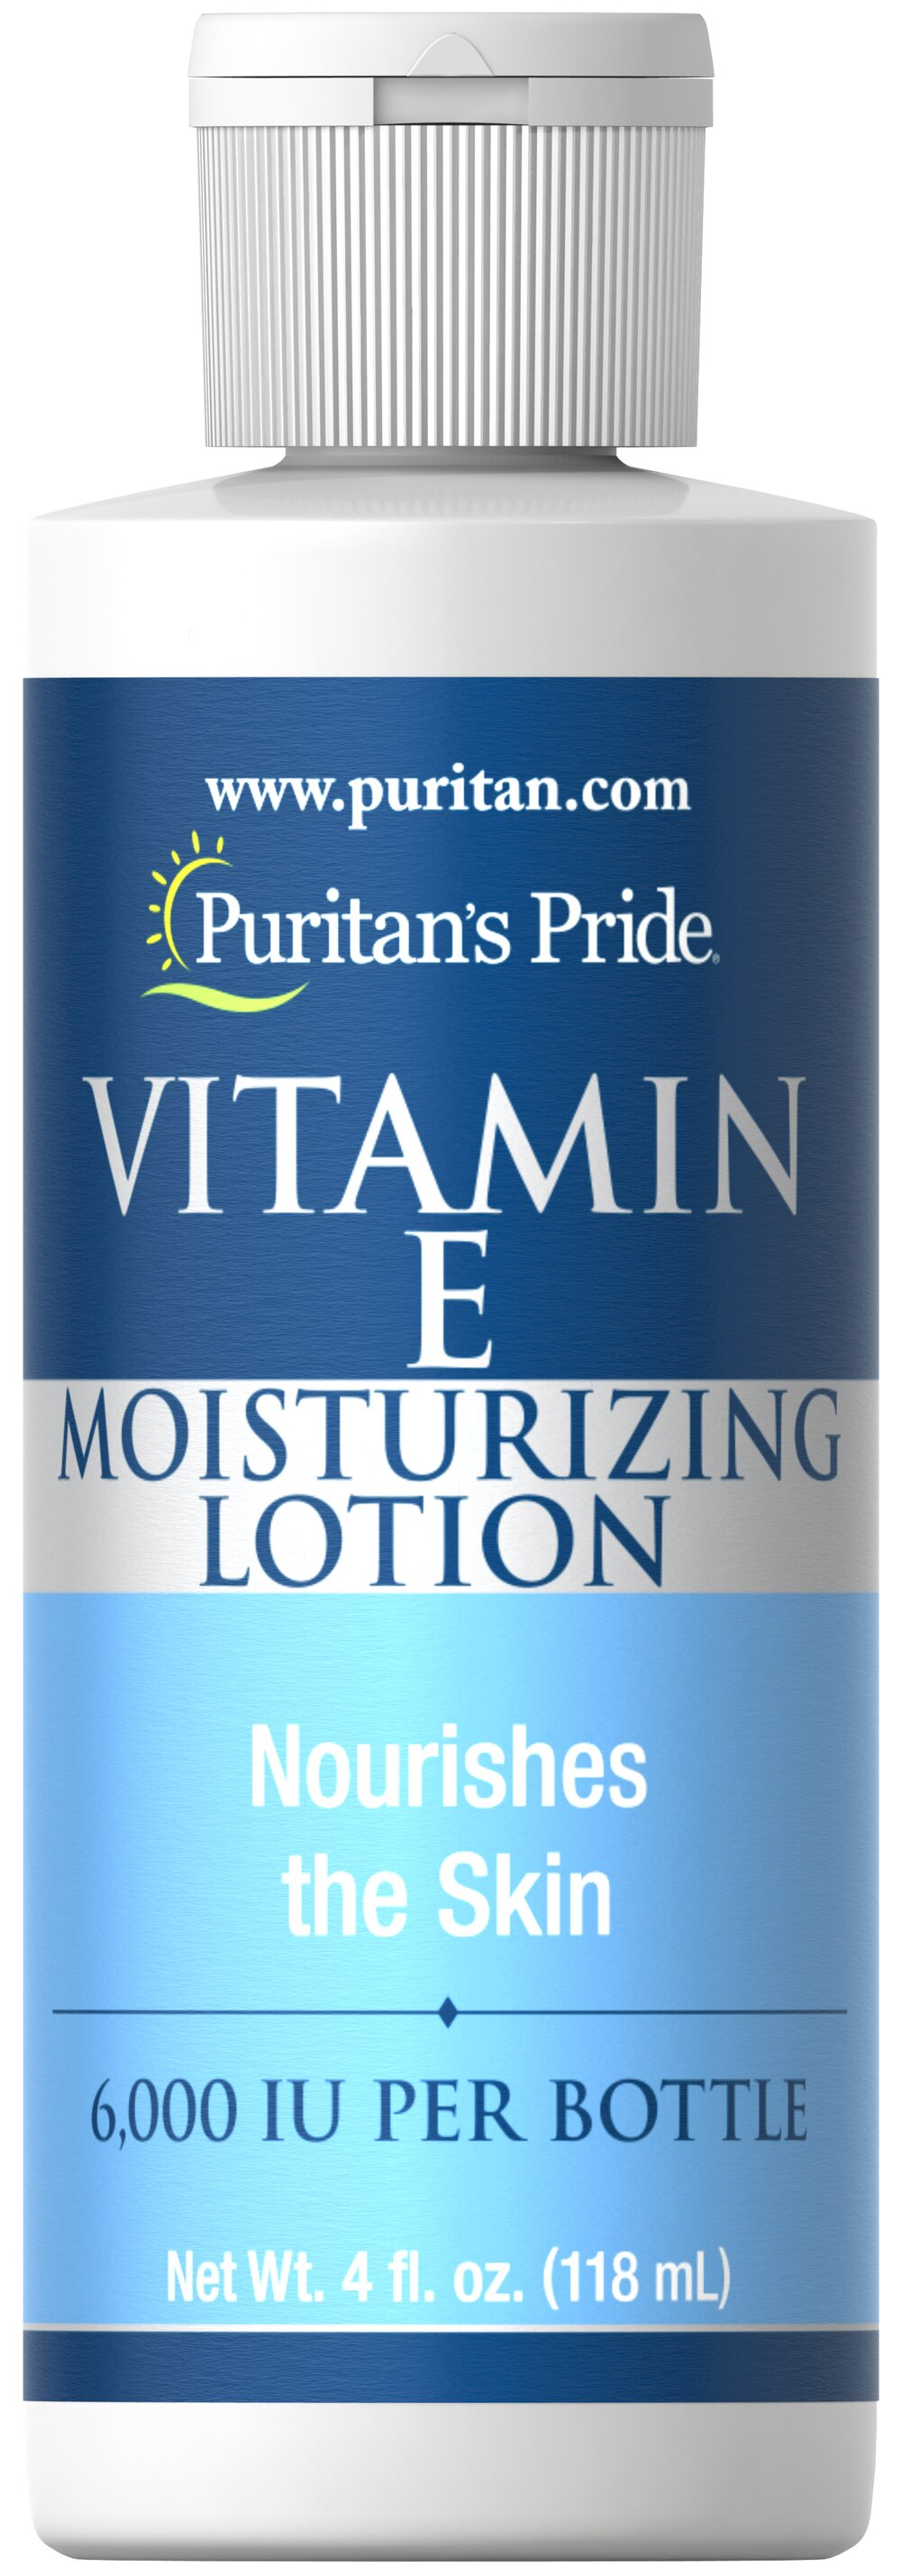 Vitamin E Moisturizing Lotion 6,000 IU  4 oz Lotion 6000 IU $7.19